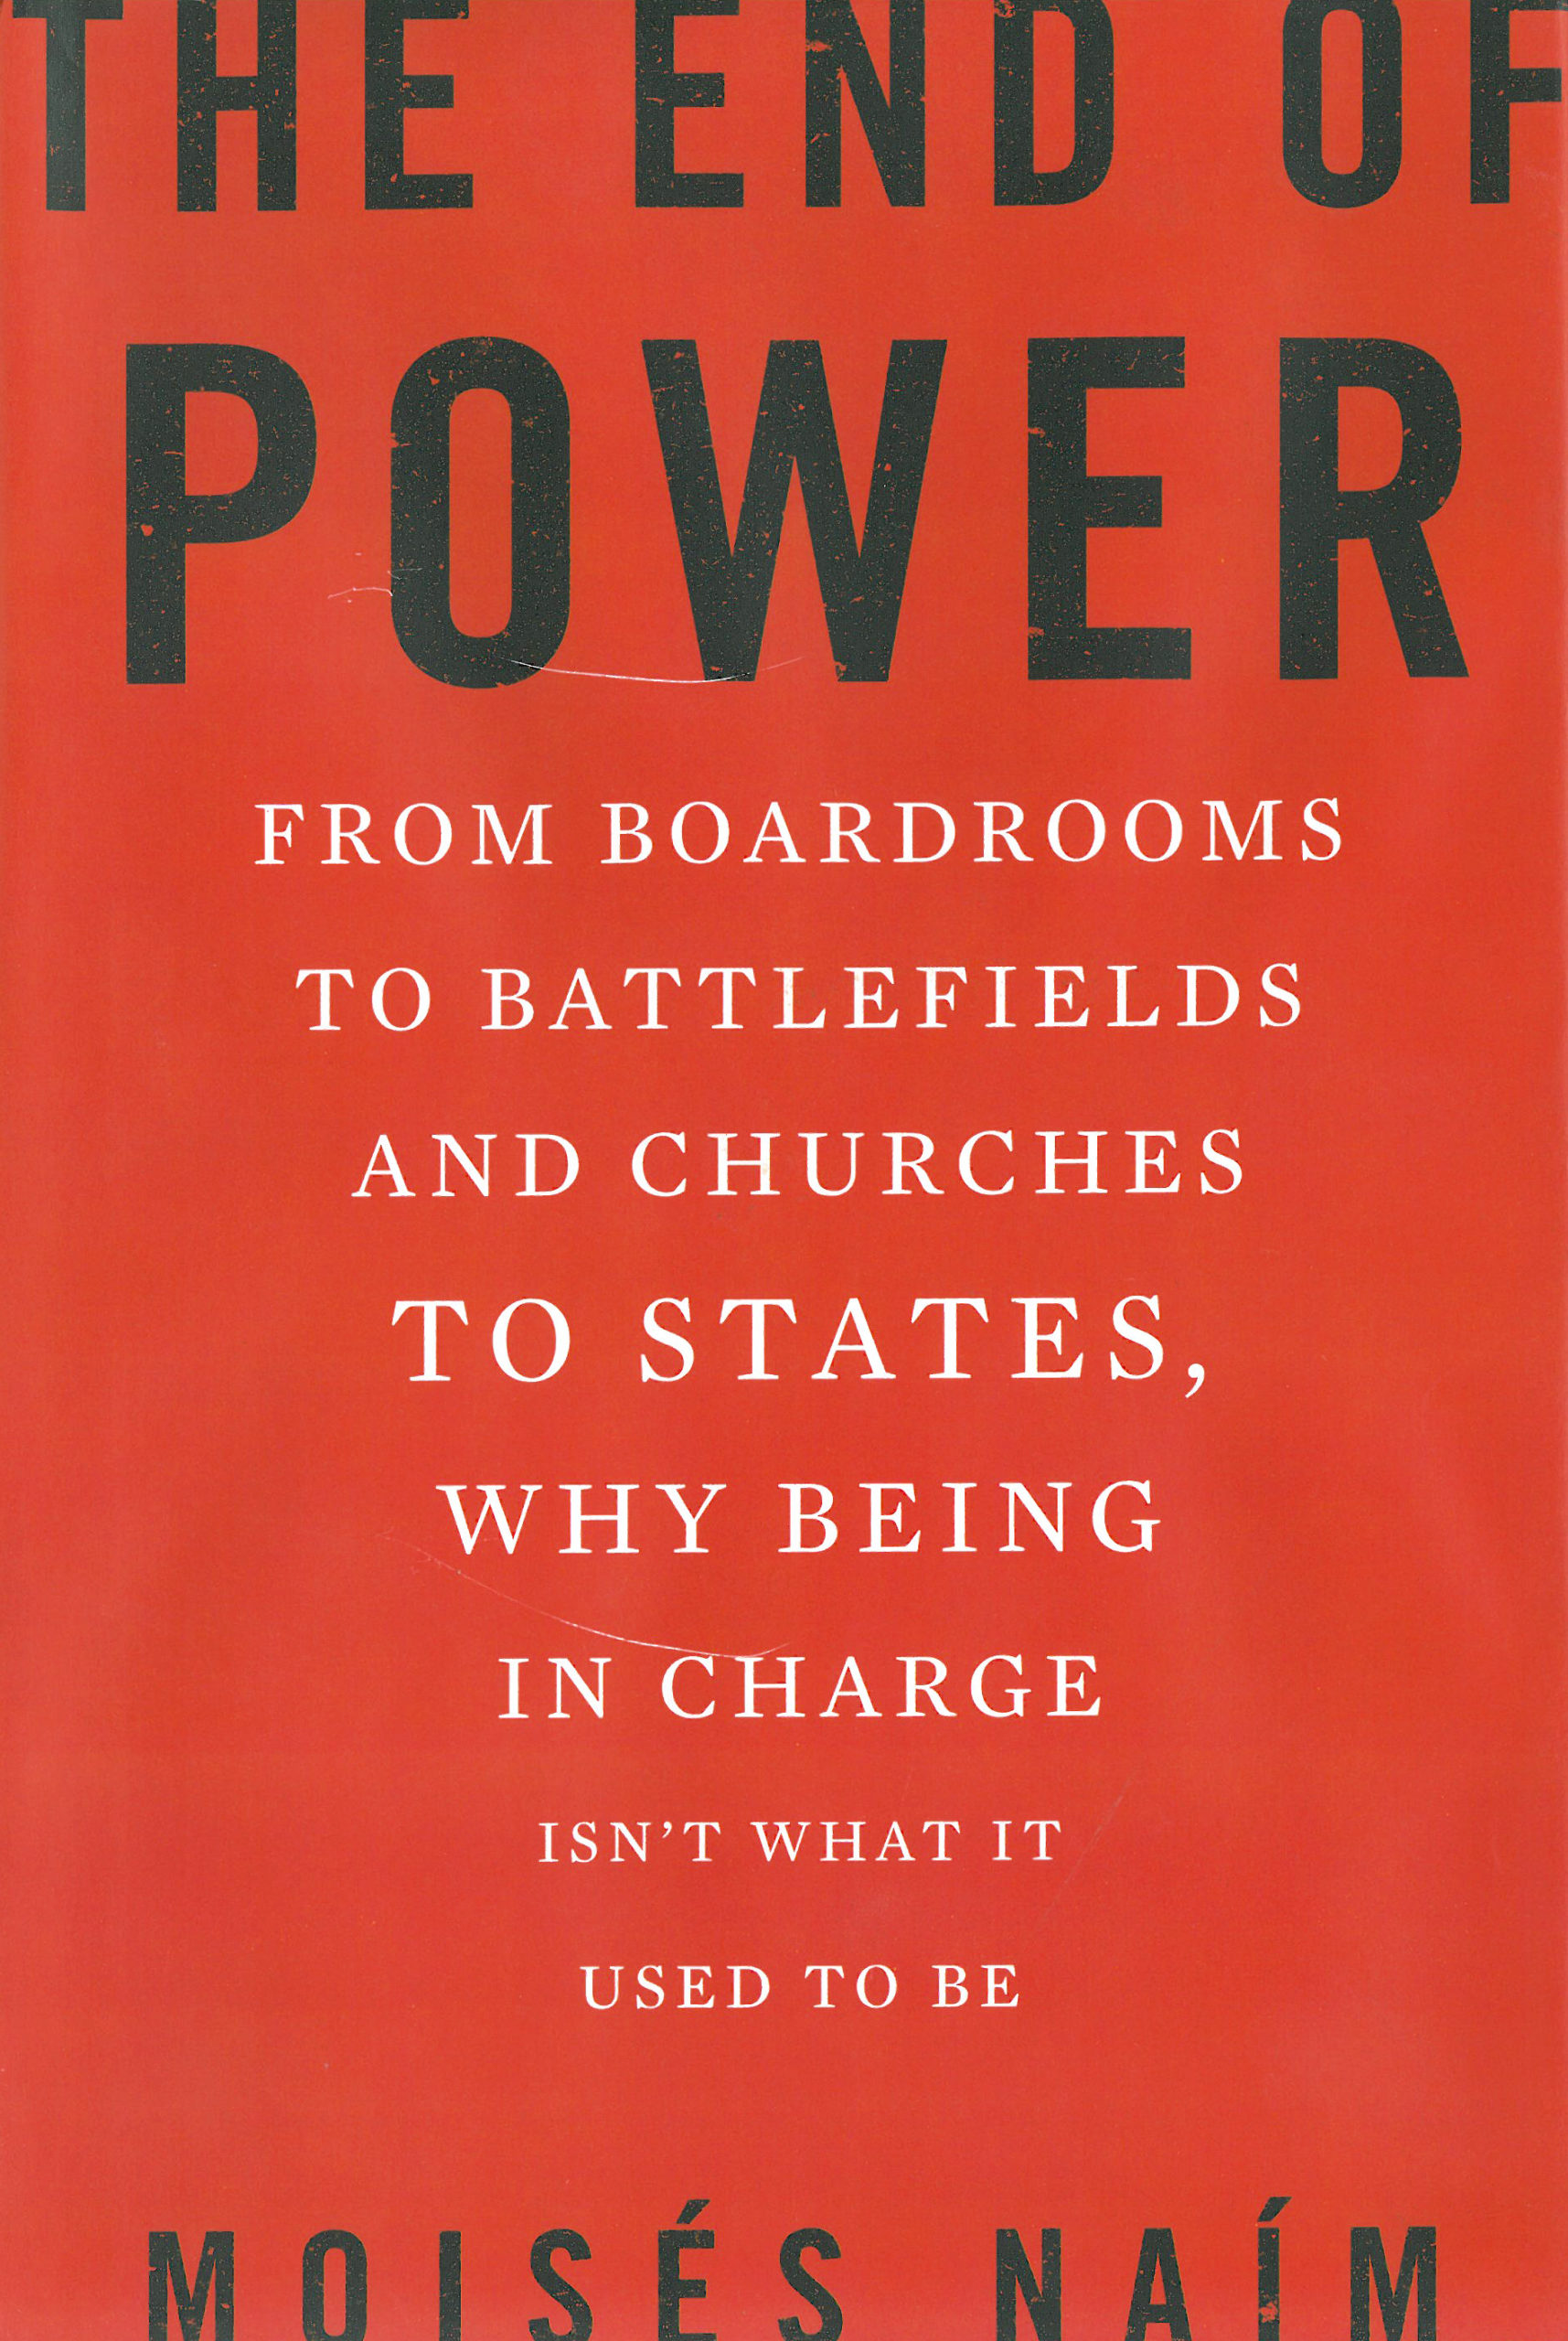 Moisés Naím: The End of Power. From Boardrooms to Battlefields and Churches to States, Why Being in Charge Isn't What It Used to Be. Basic Books 2013, 306 s.